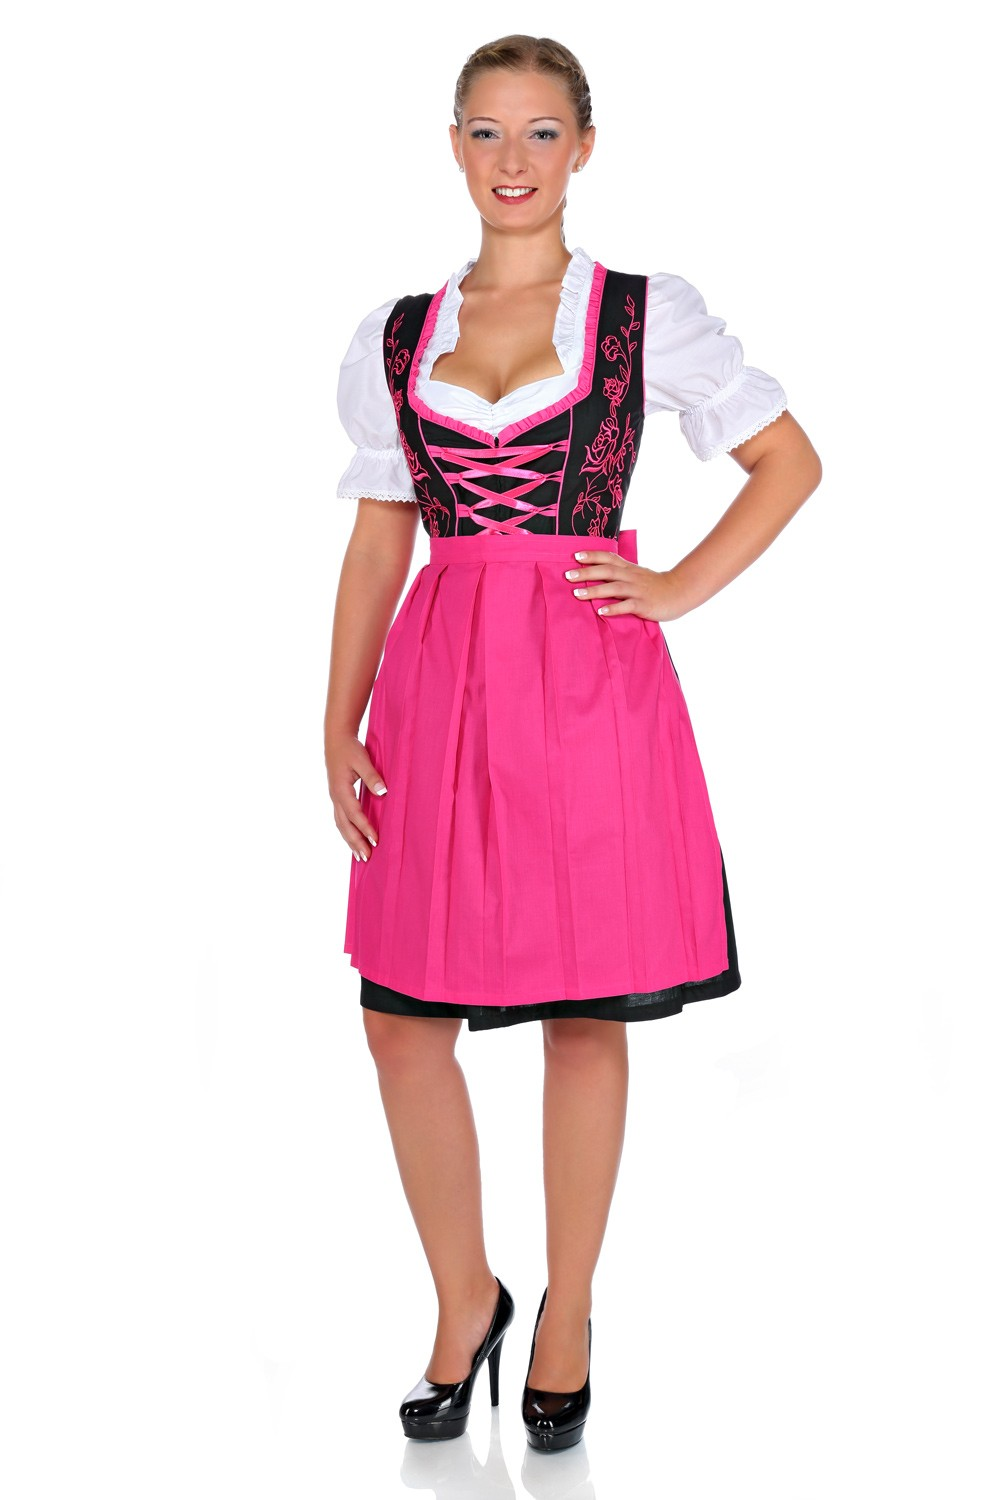 dirndl g nstig dirndl dirndl shop dirndl unter 50. Black Bedroom Furniture Sets. Home Design Ideas